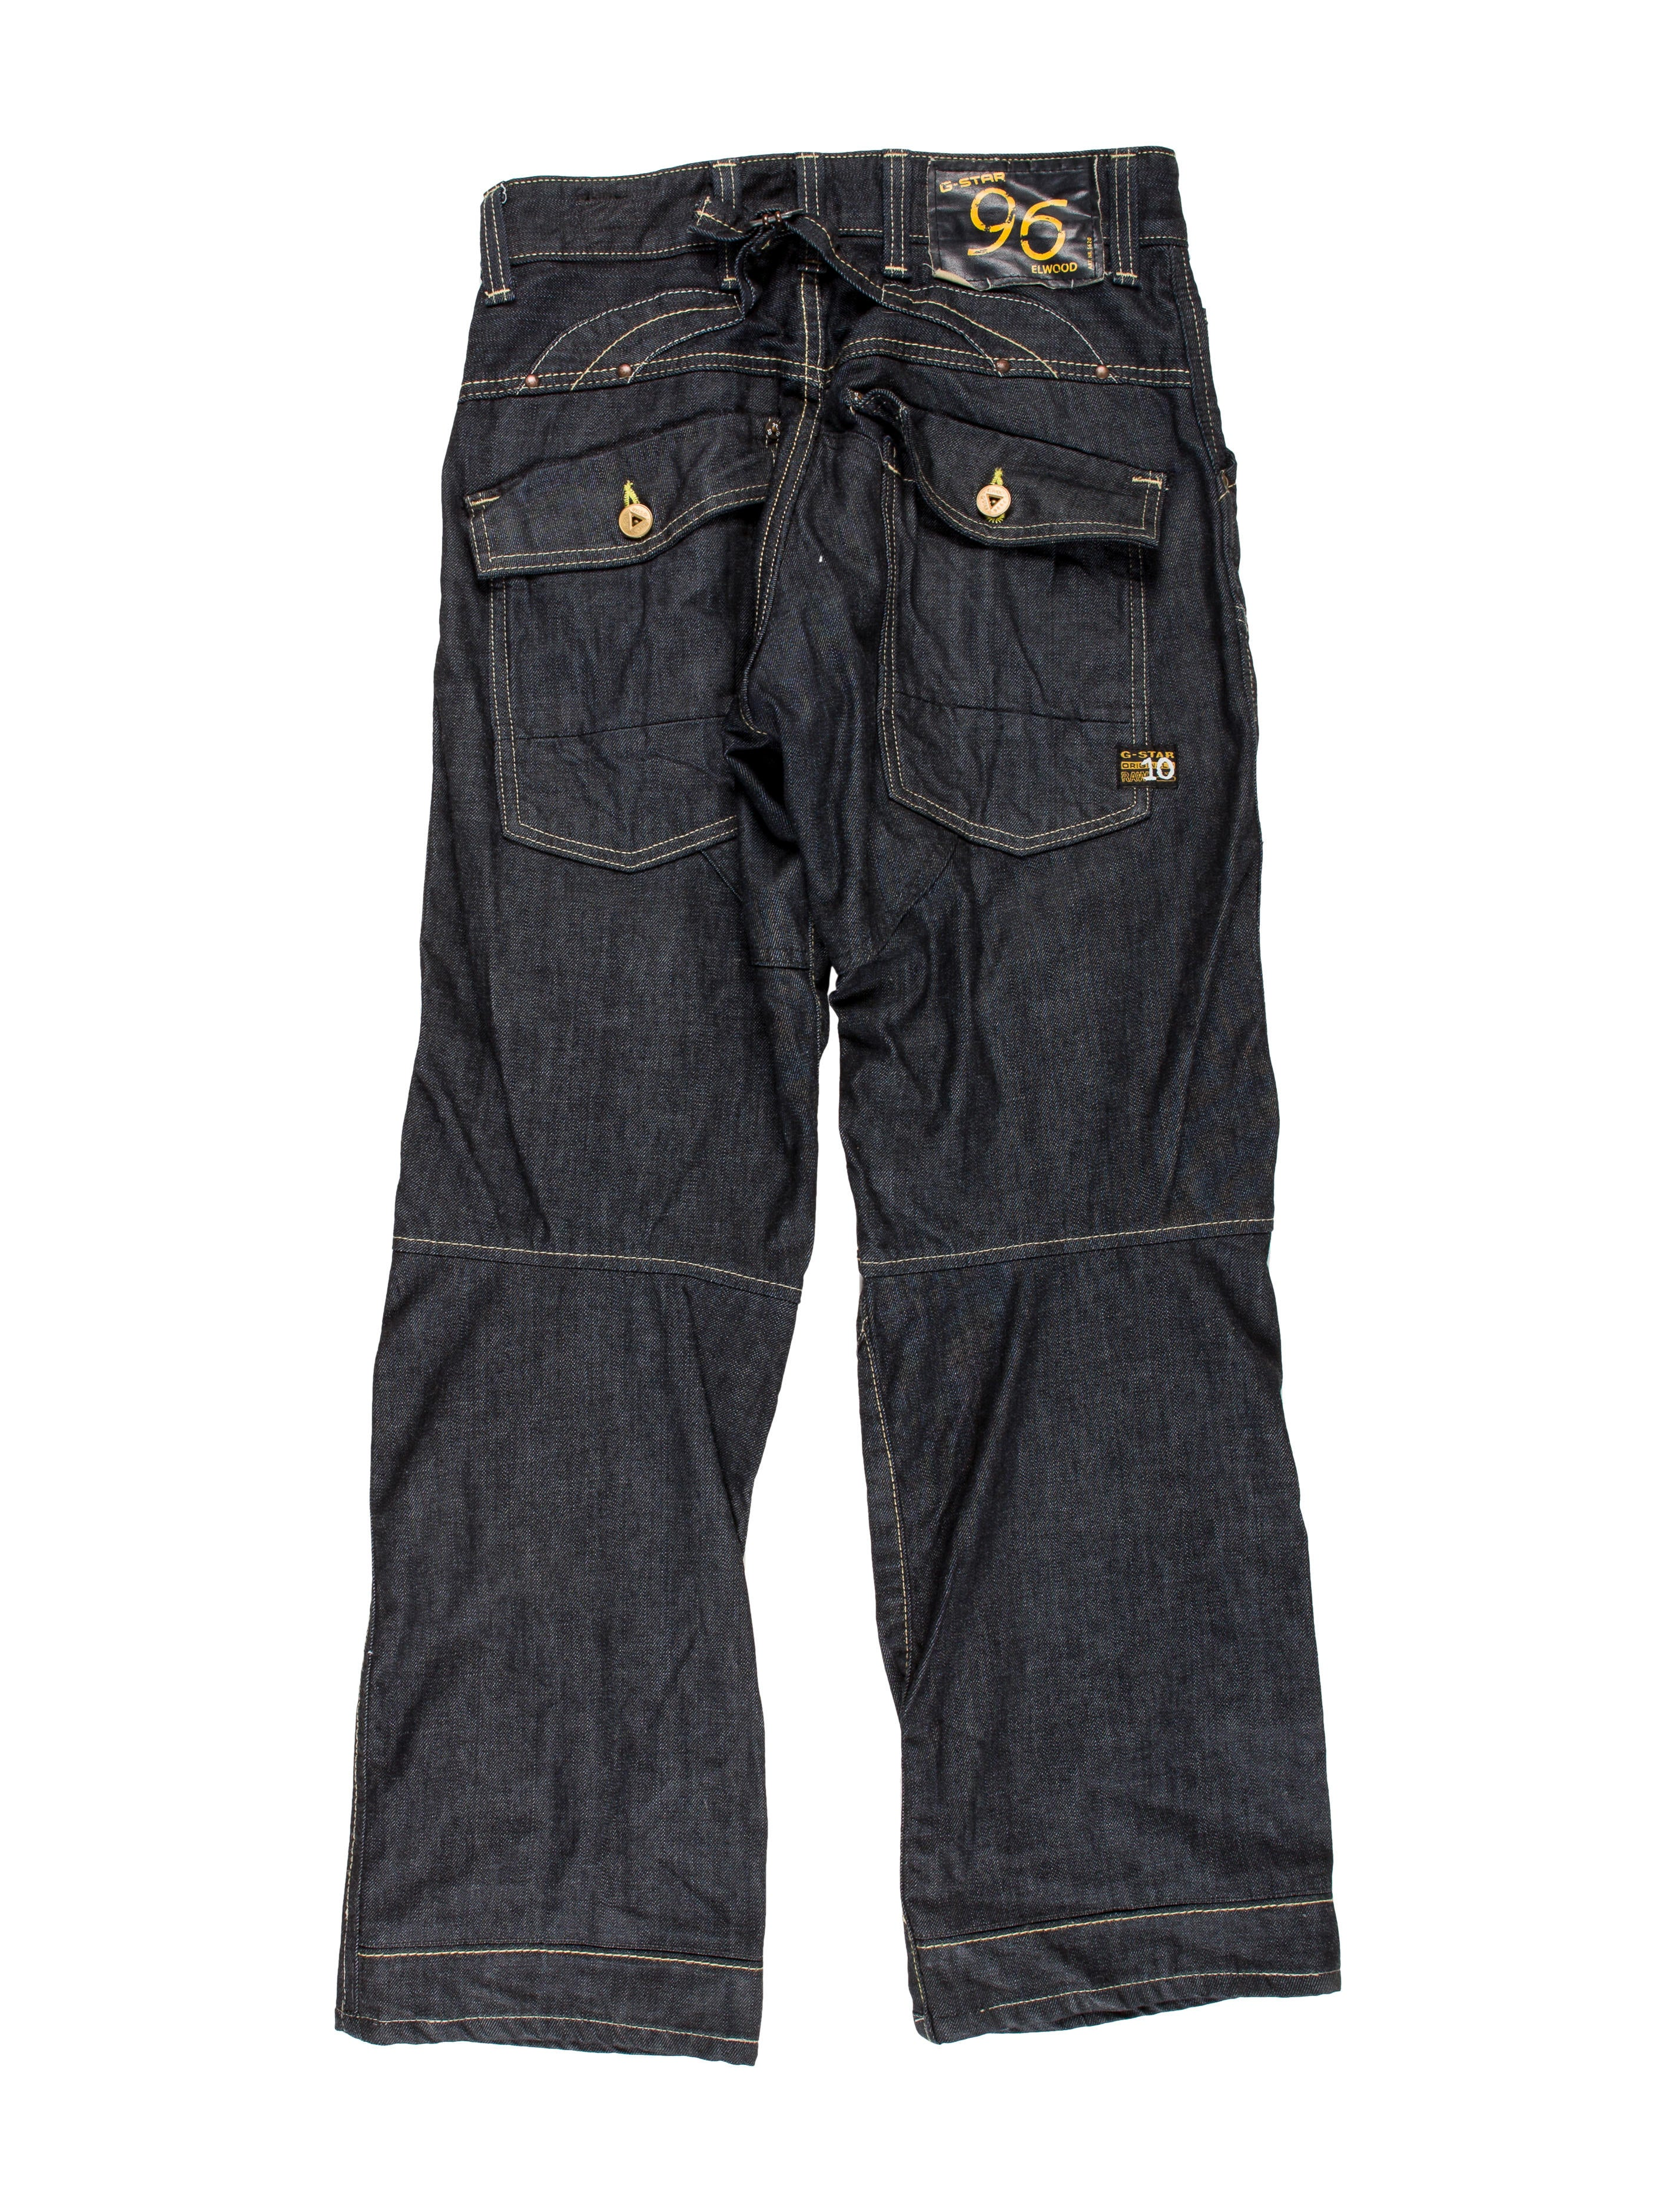 g star raw elwood 5620 jeans clothing wgsrw20050 the. Black Bedroom Furniture Sets. Home Design Ideas